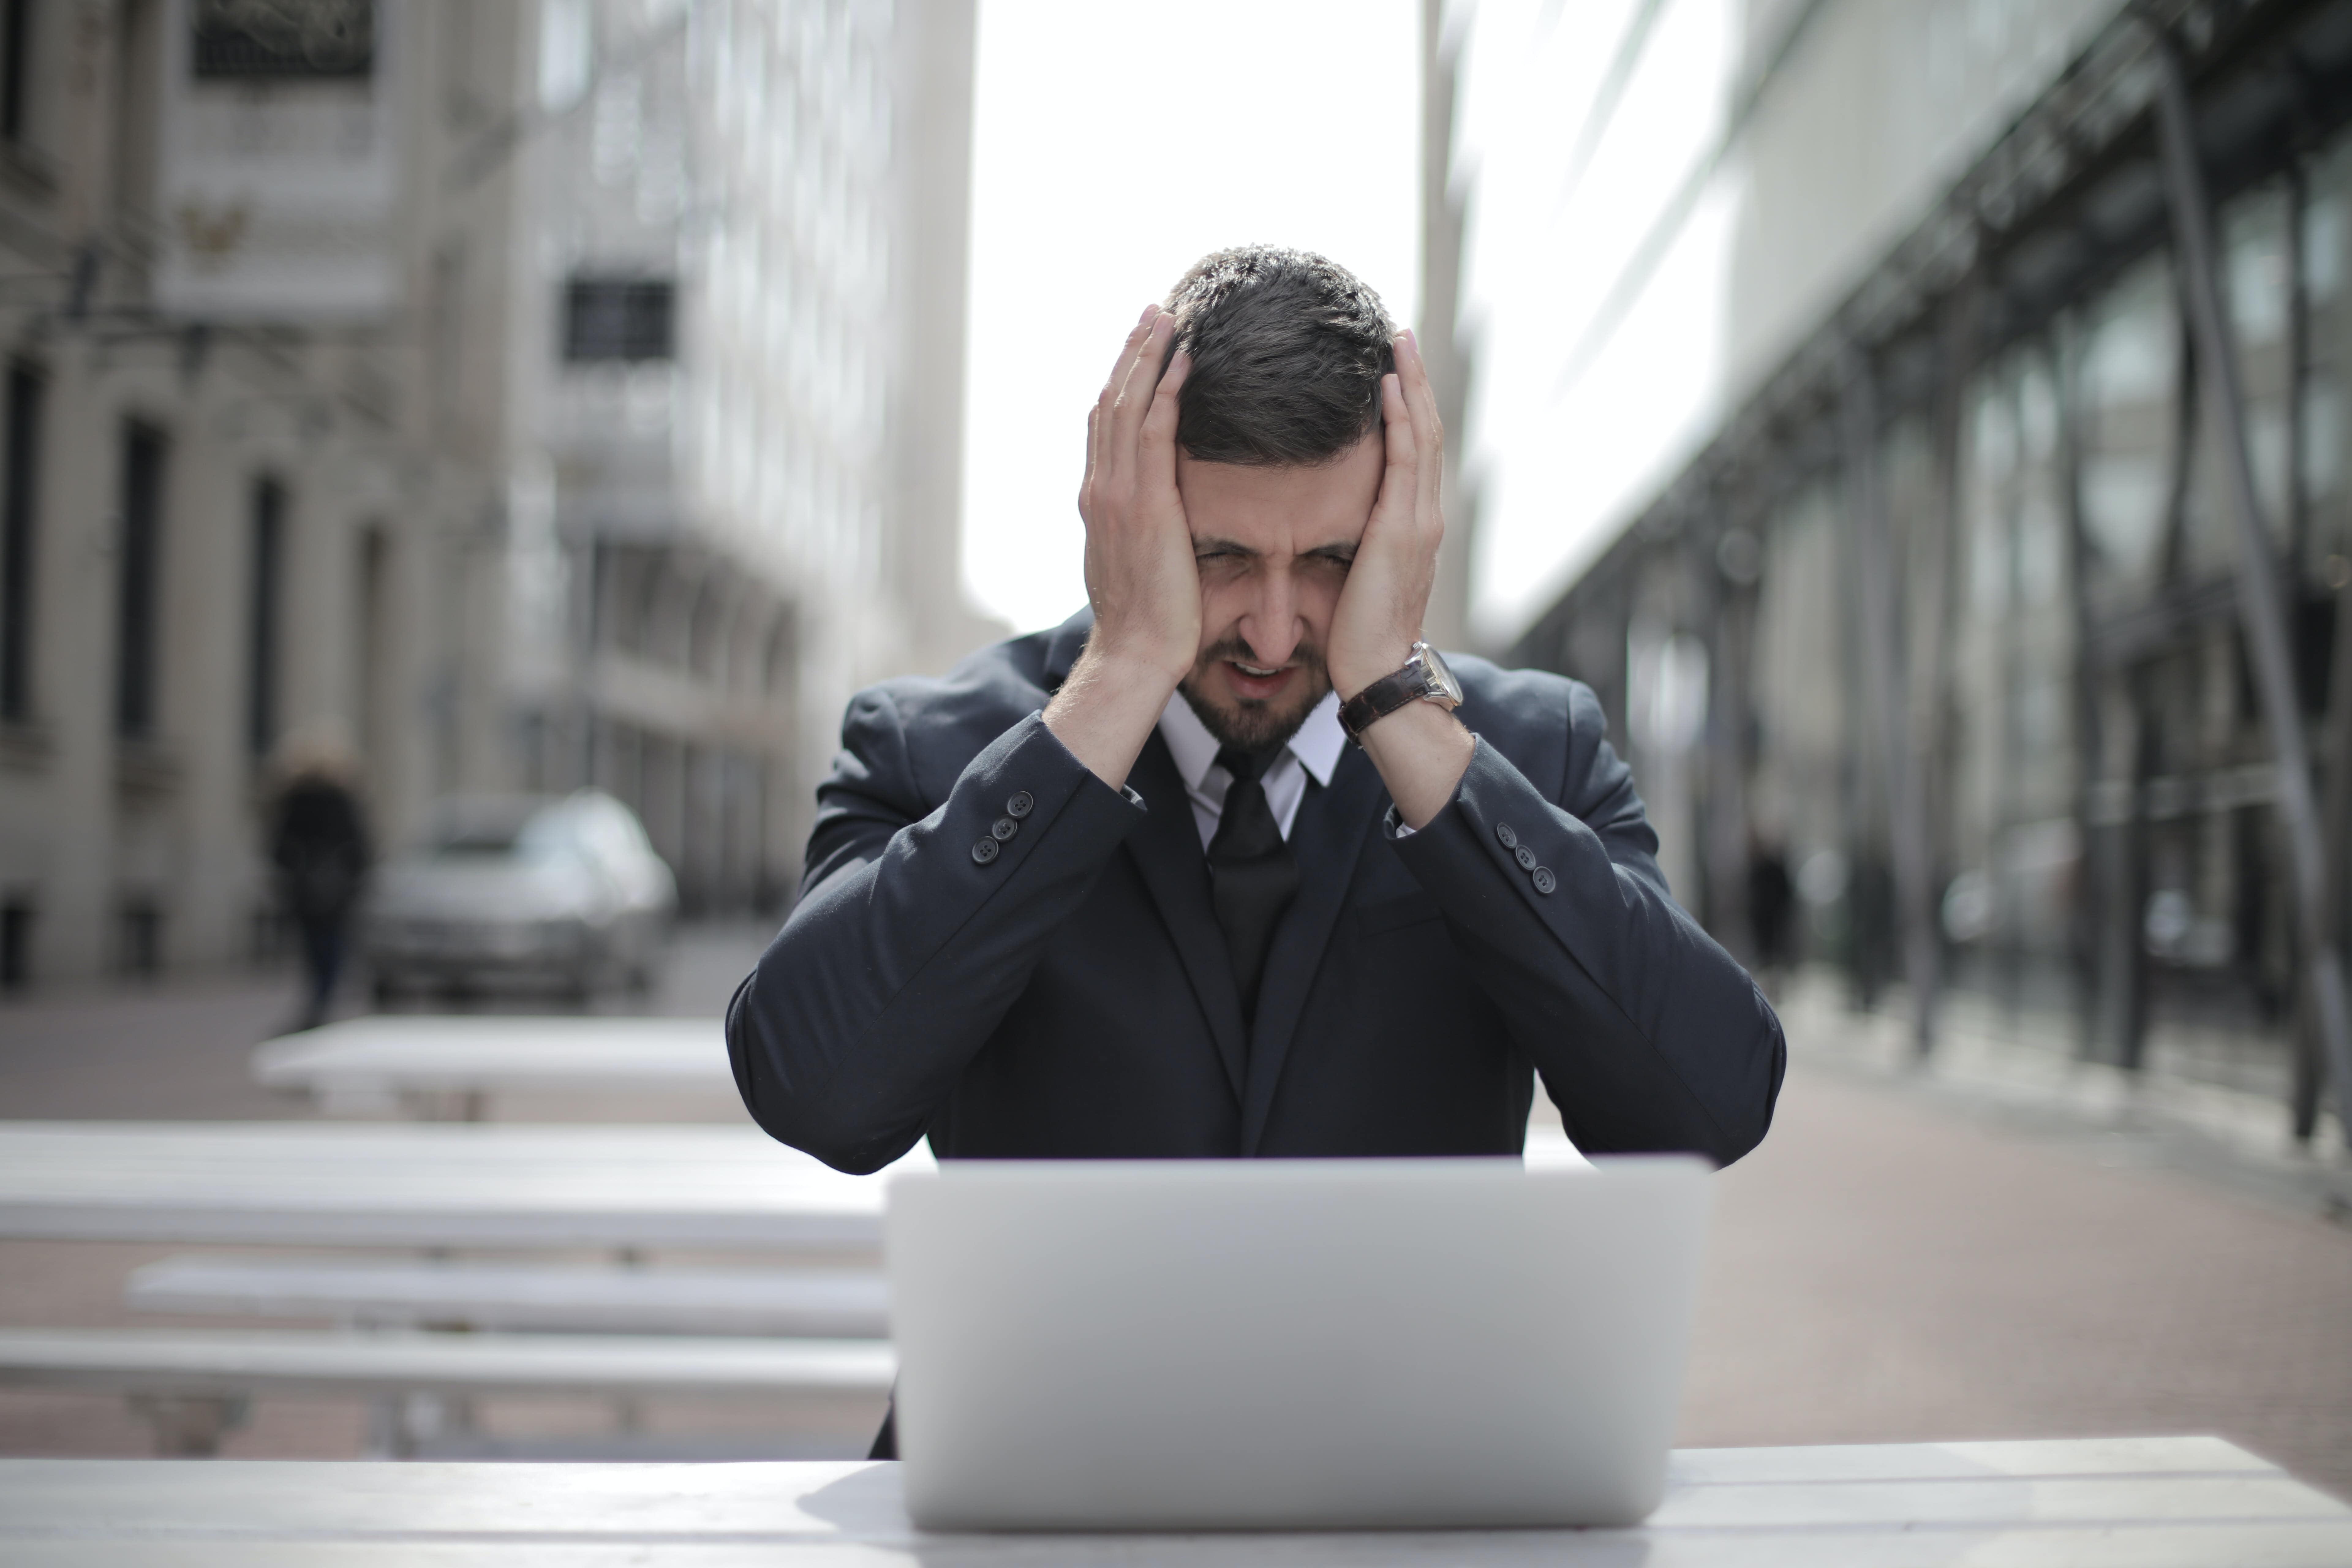 Frustrated man who got the wrong tax advice